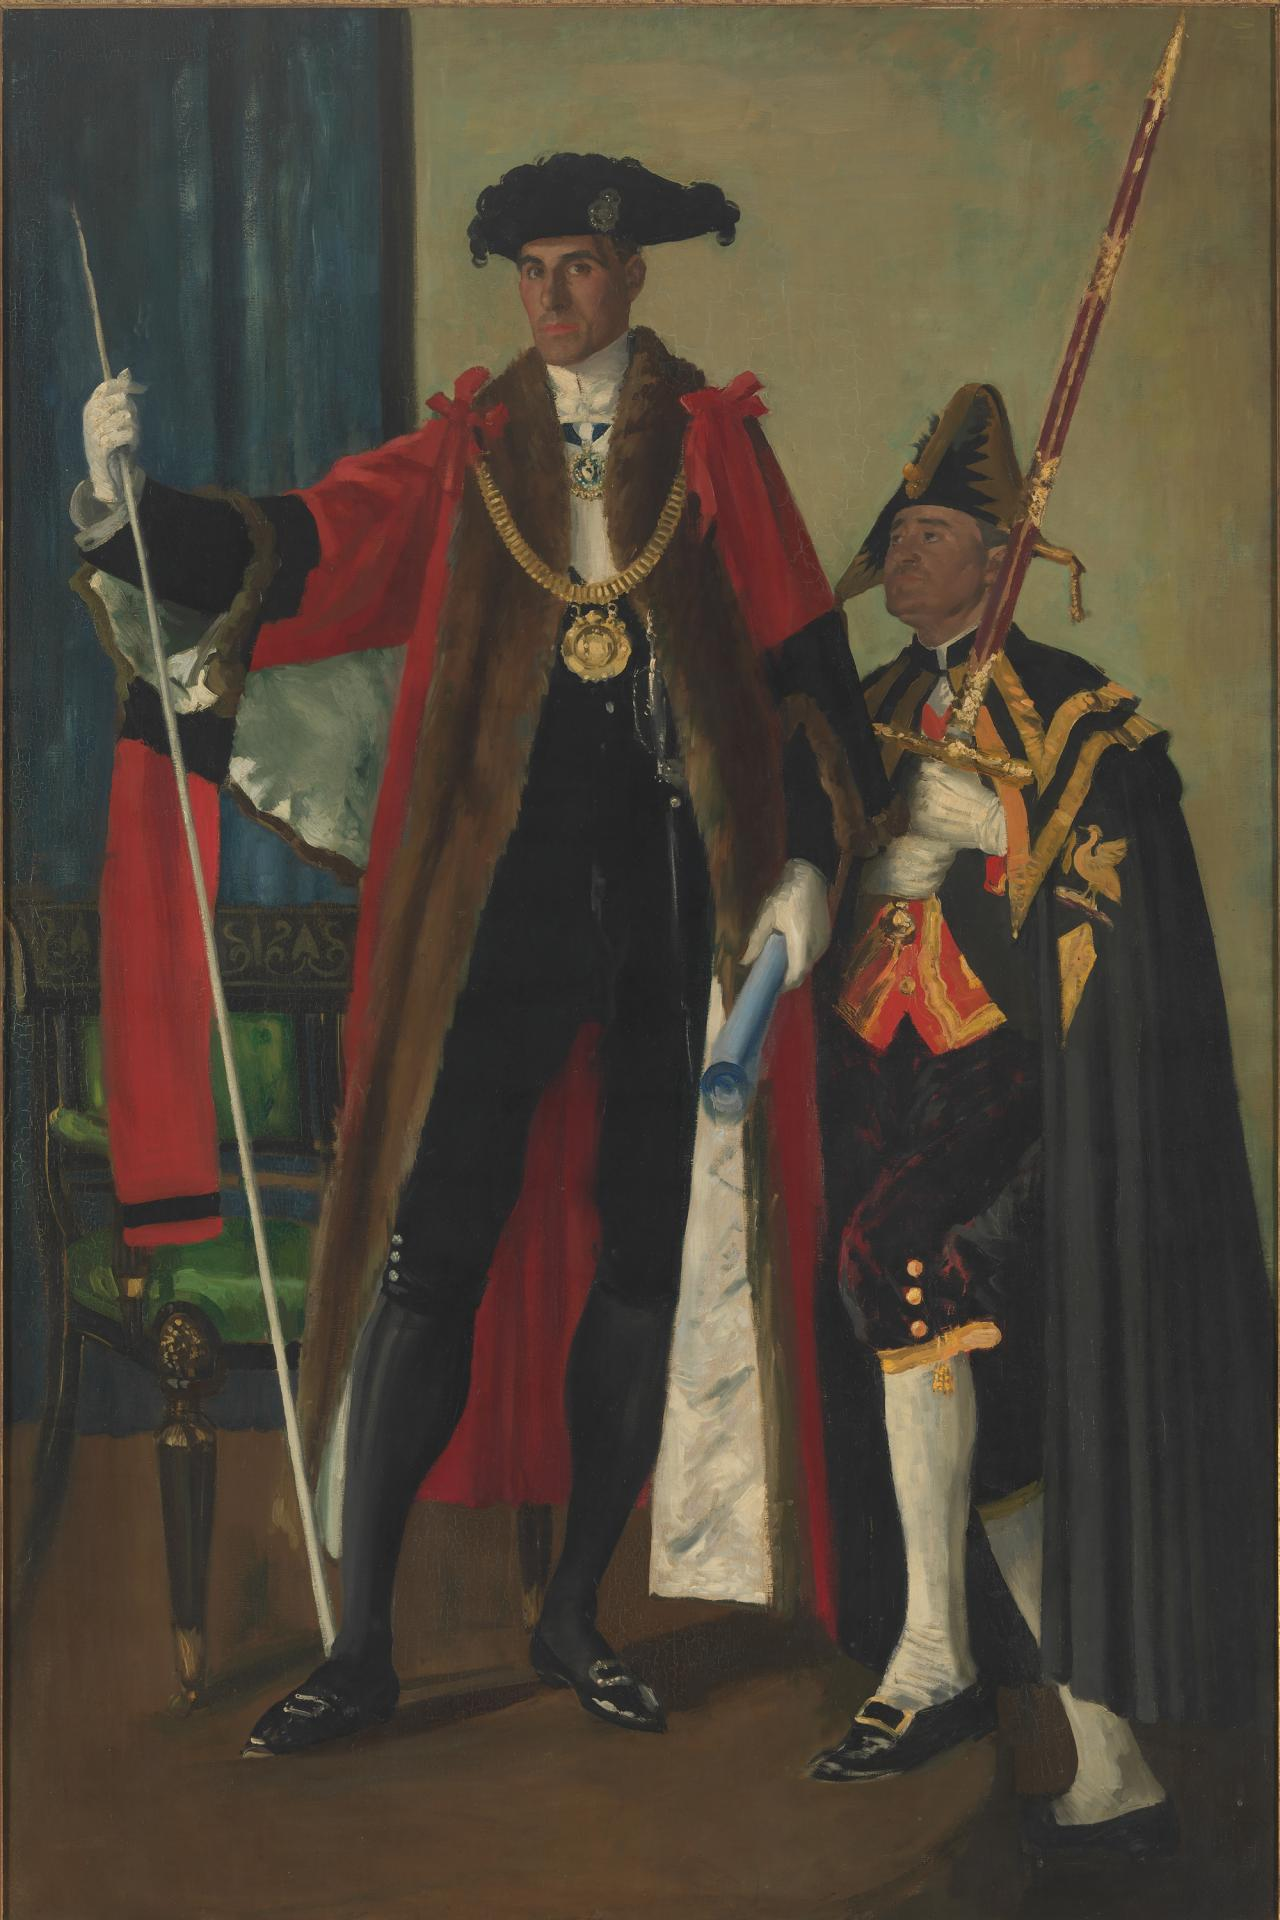 Rt. Hon. Harold Chaloner Dowdall, Lord Mayor of Liverpool and his sword-bearer